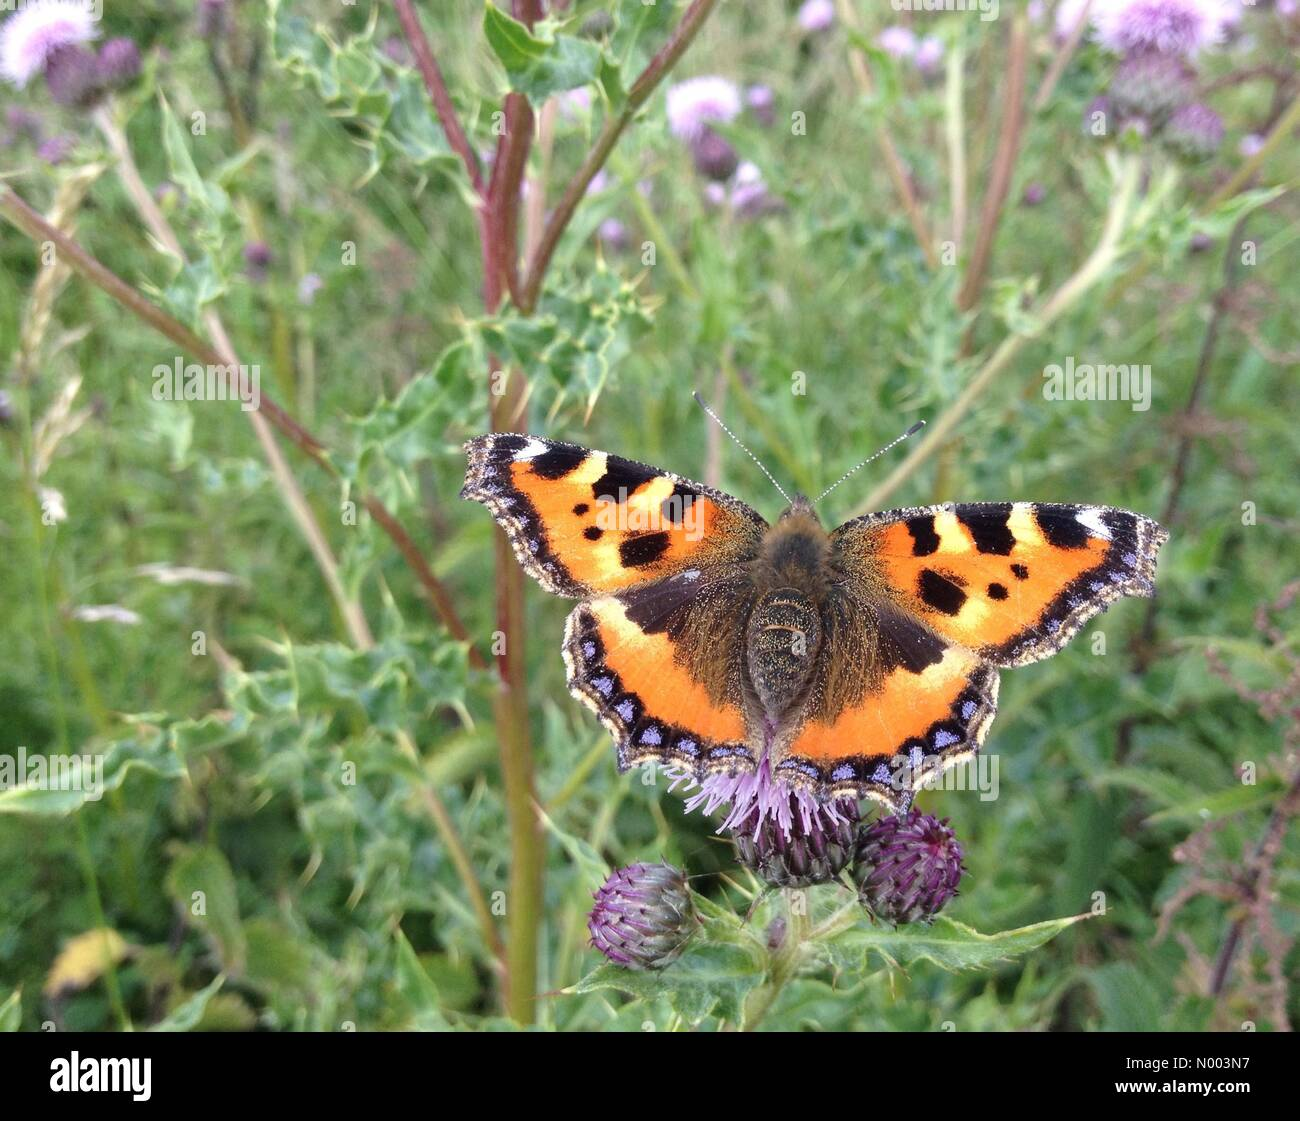 UK weather - insects in West Yorkshire. A sunny day in Leeds, West Yorkshire enticed the insects out. This tortoiseshell - Stock Image